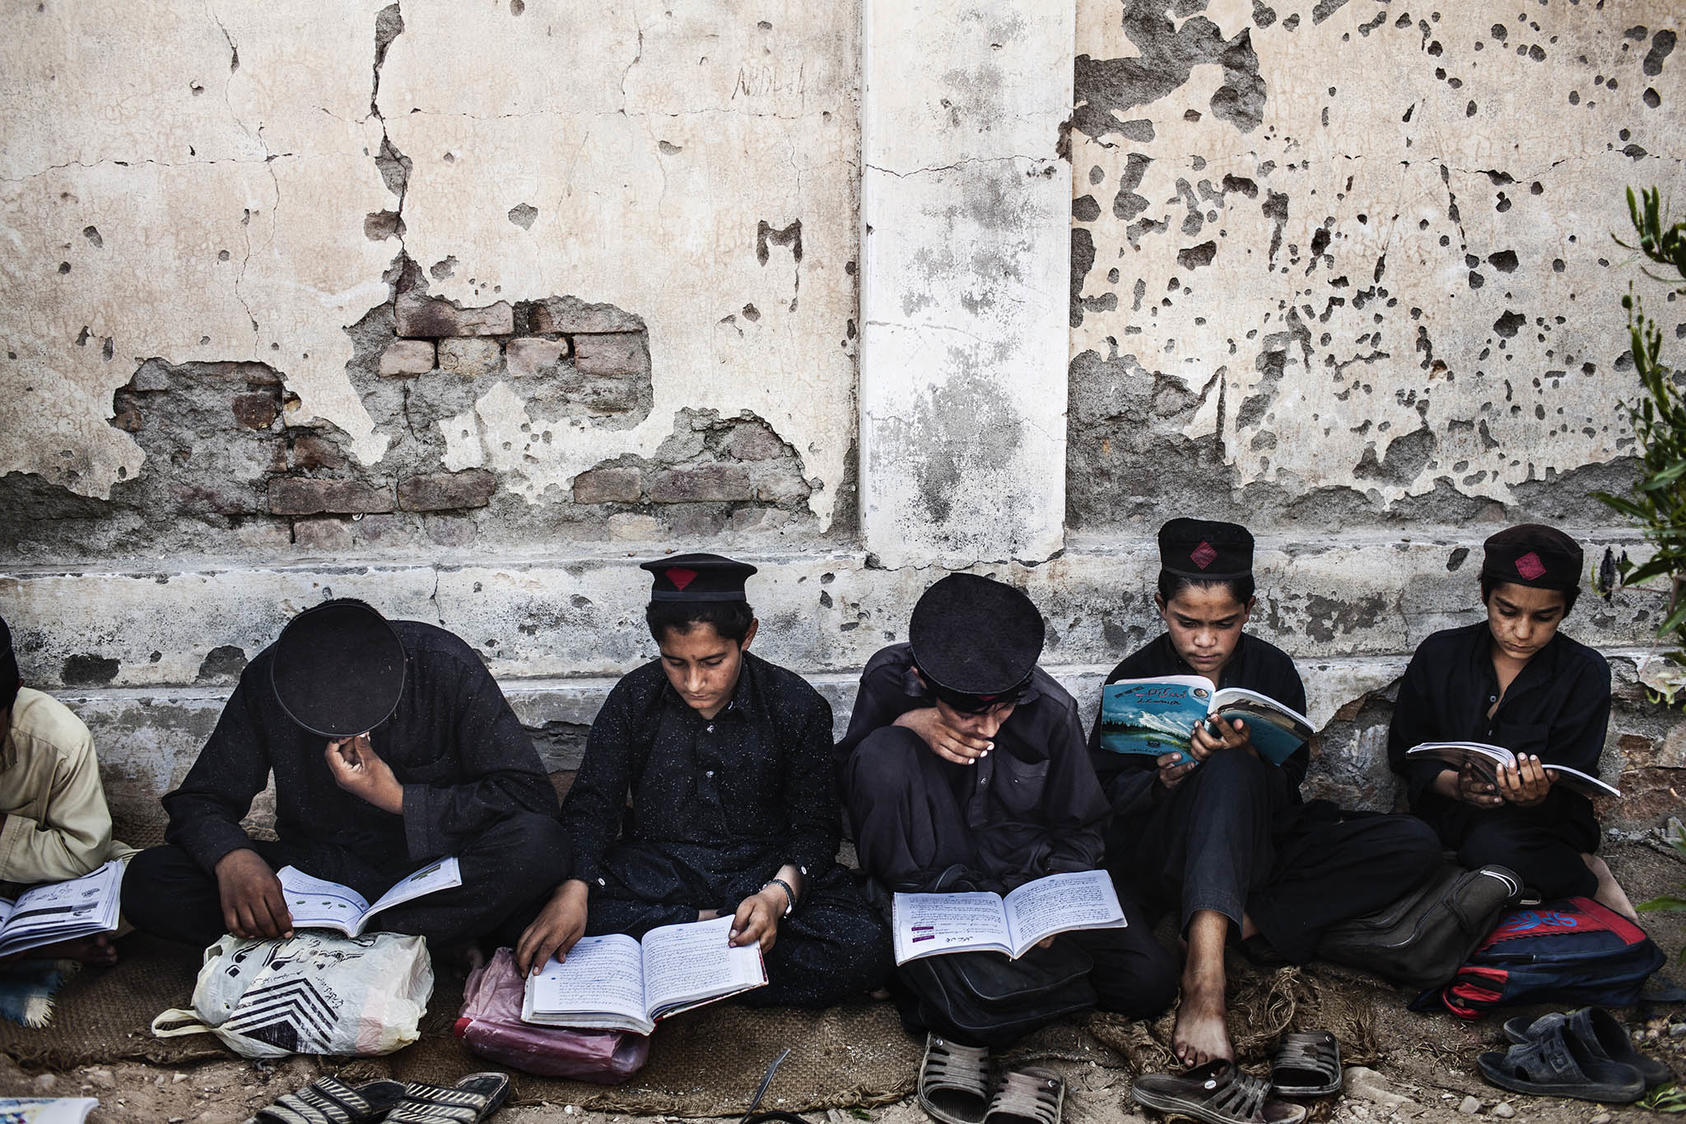 Students study outside of the Government Middle School for Boys, which was bombed by Taliban militants, in the Mohmand Agency in Pakistan, June 10, 2013. (Diego Ibarra Sanchez/The New York Times)